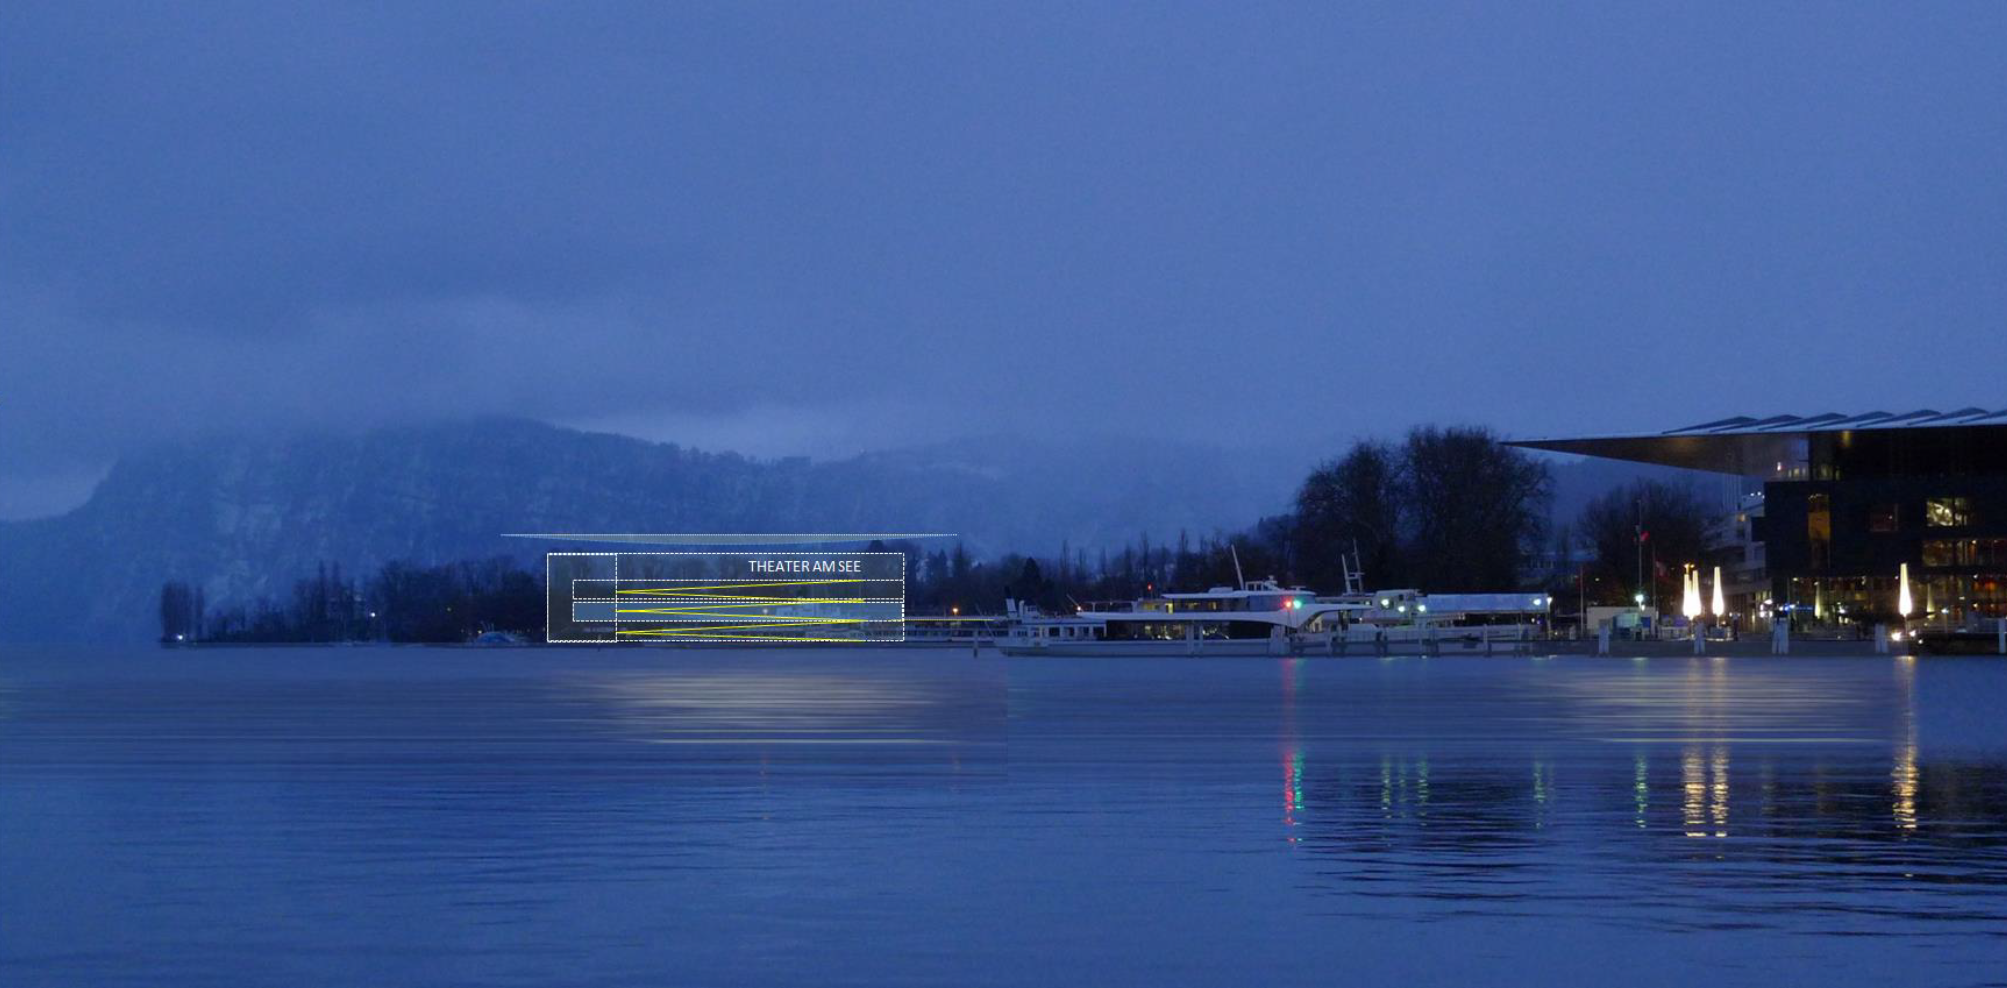 Theater am See